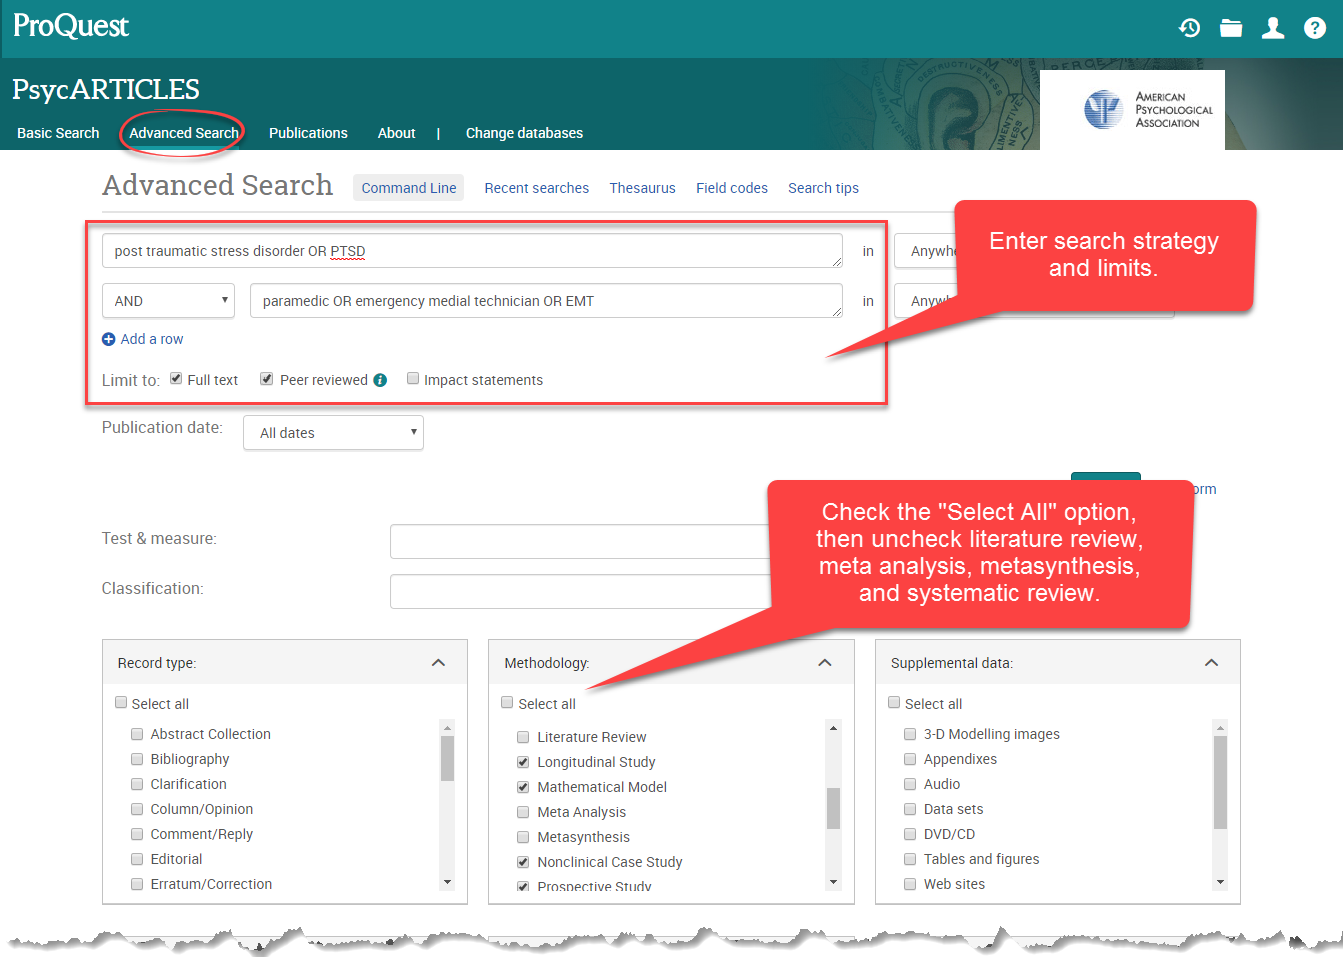 Screen capture of PsycARTICLES search screen